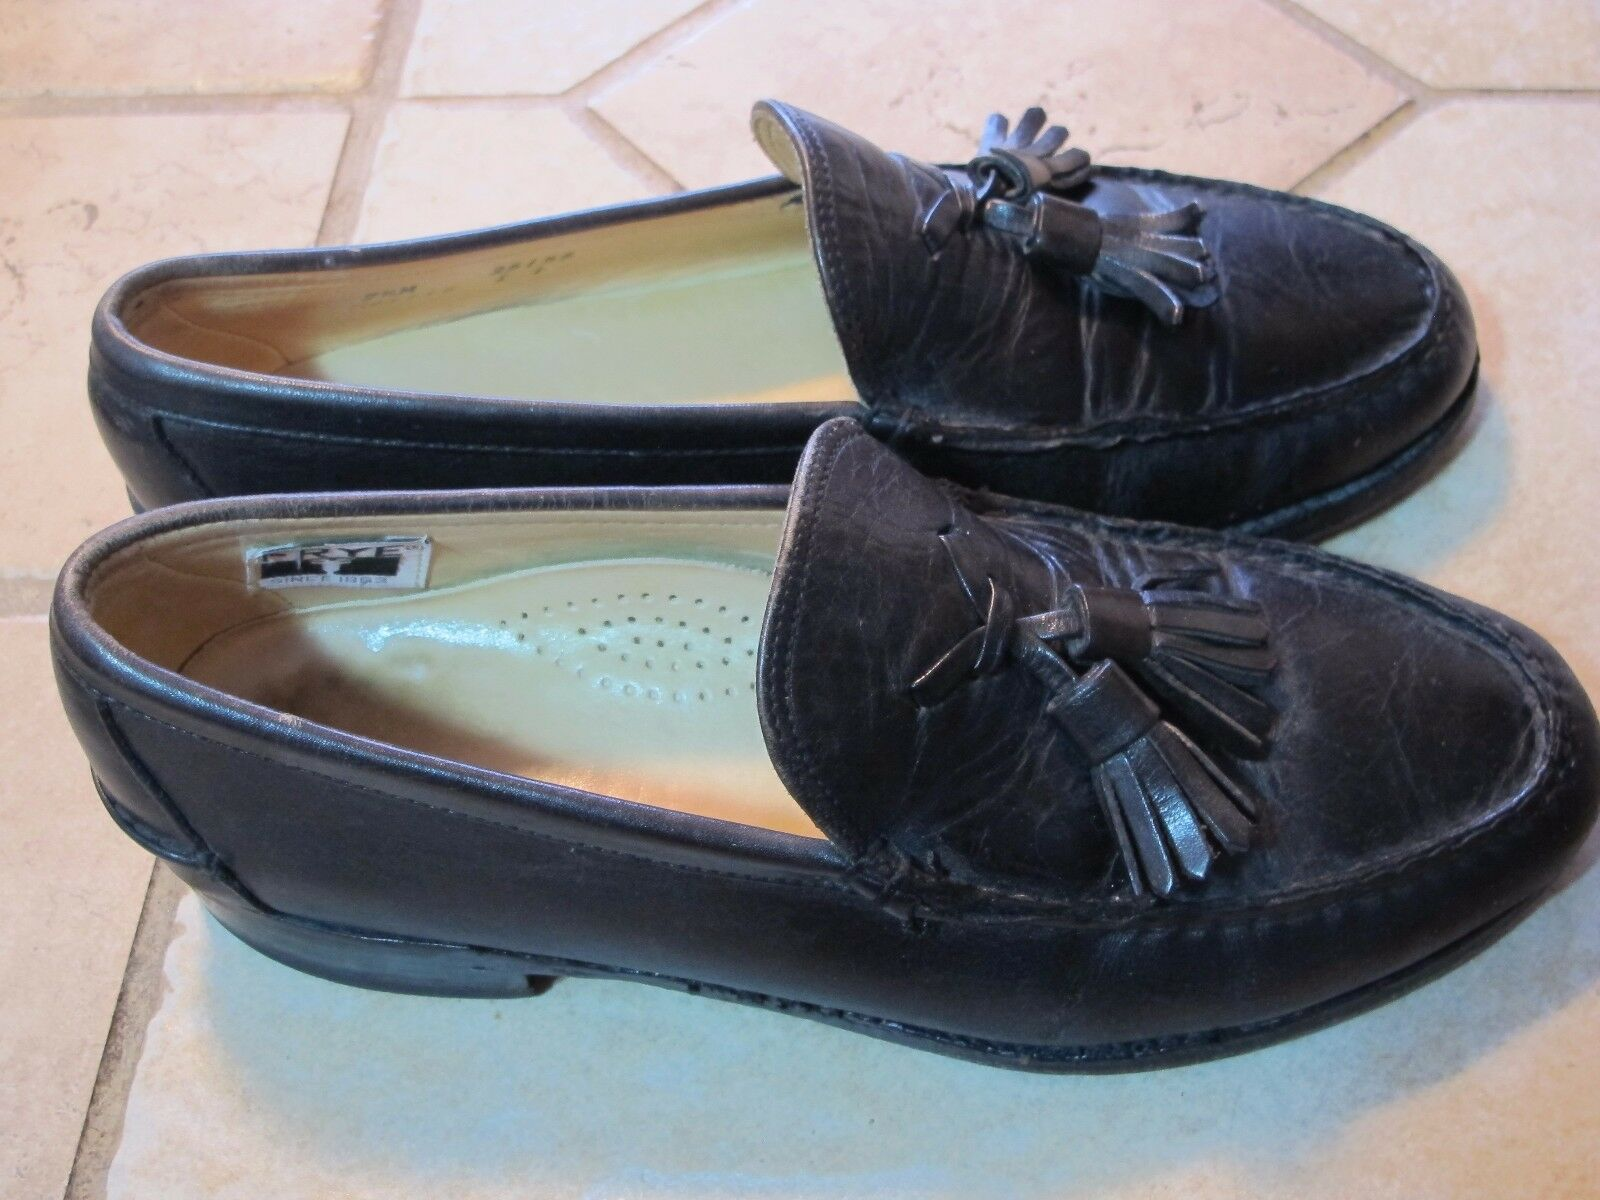 MEN'S FRYE GENUINE HAND Black LEATHER TASSLE CASUAL DRESS LOAFERS SHOES 7.5 M